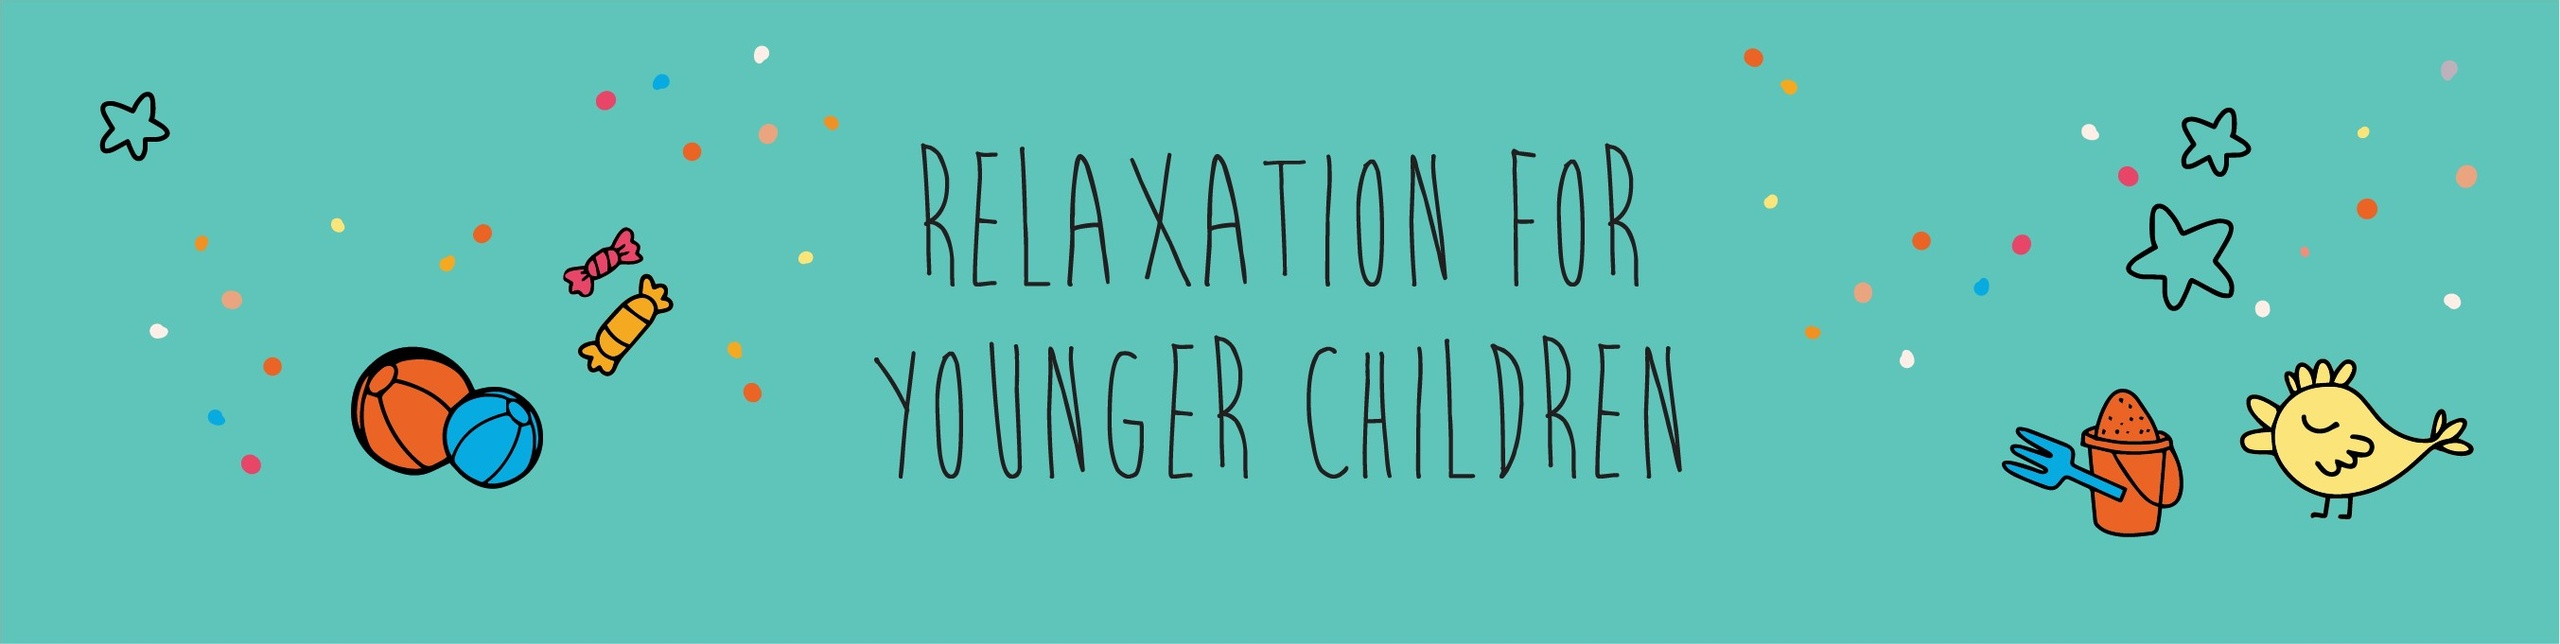 Relaxation for younger children